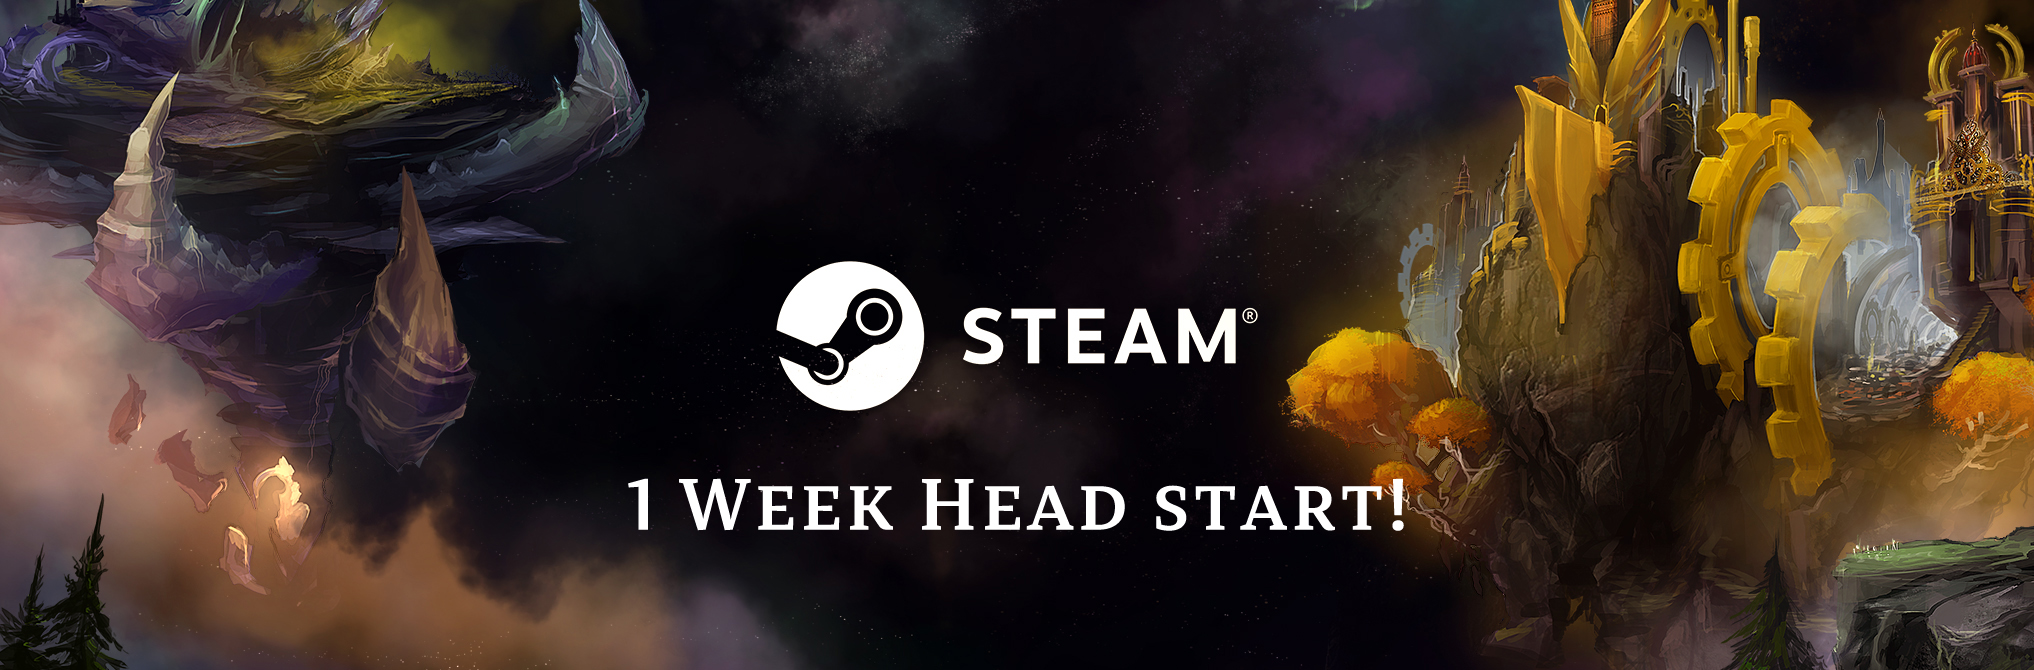 Steam Head Start!